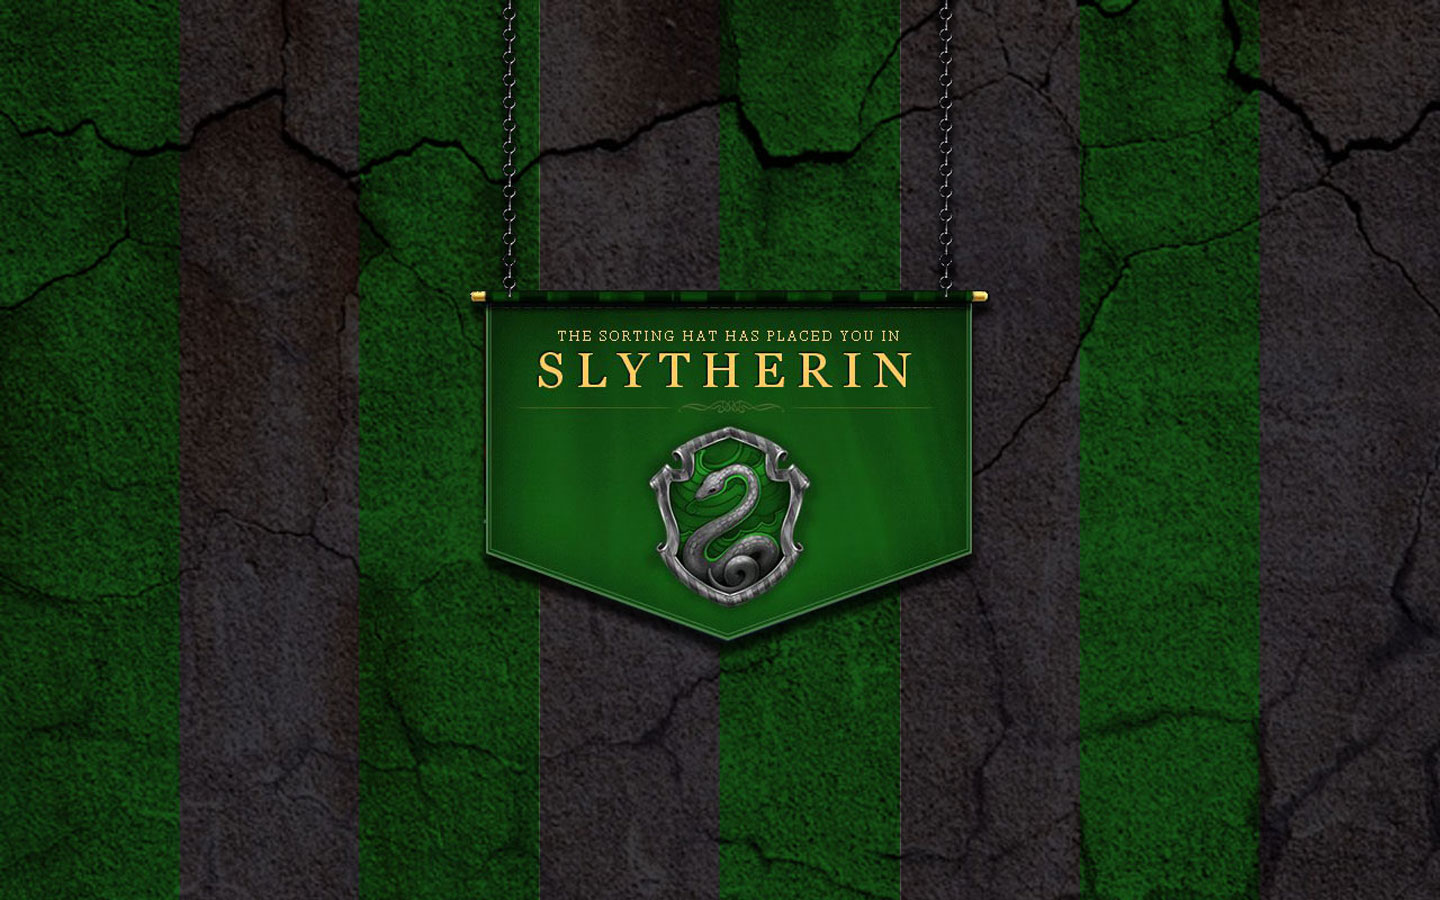 Free Download Wallpapers Slytherin Wallpaper 1440x900 For